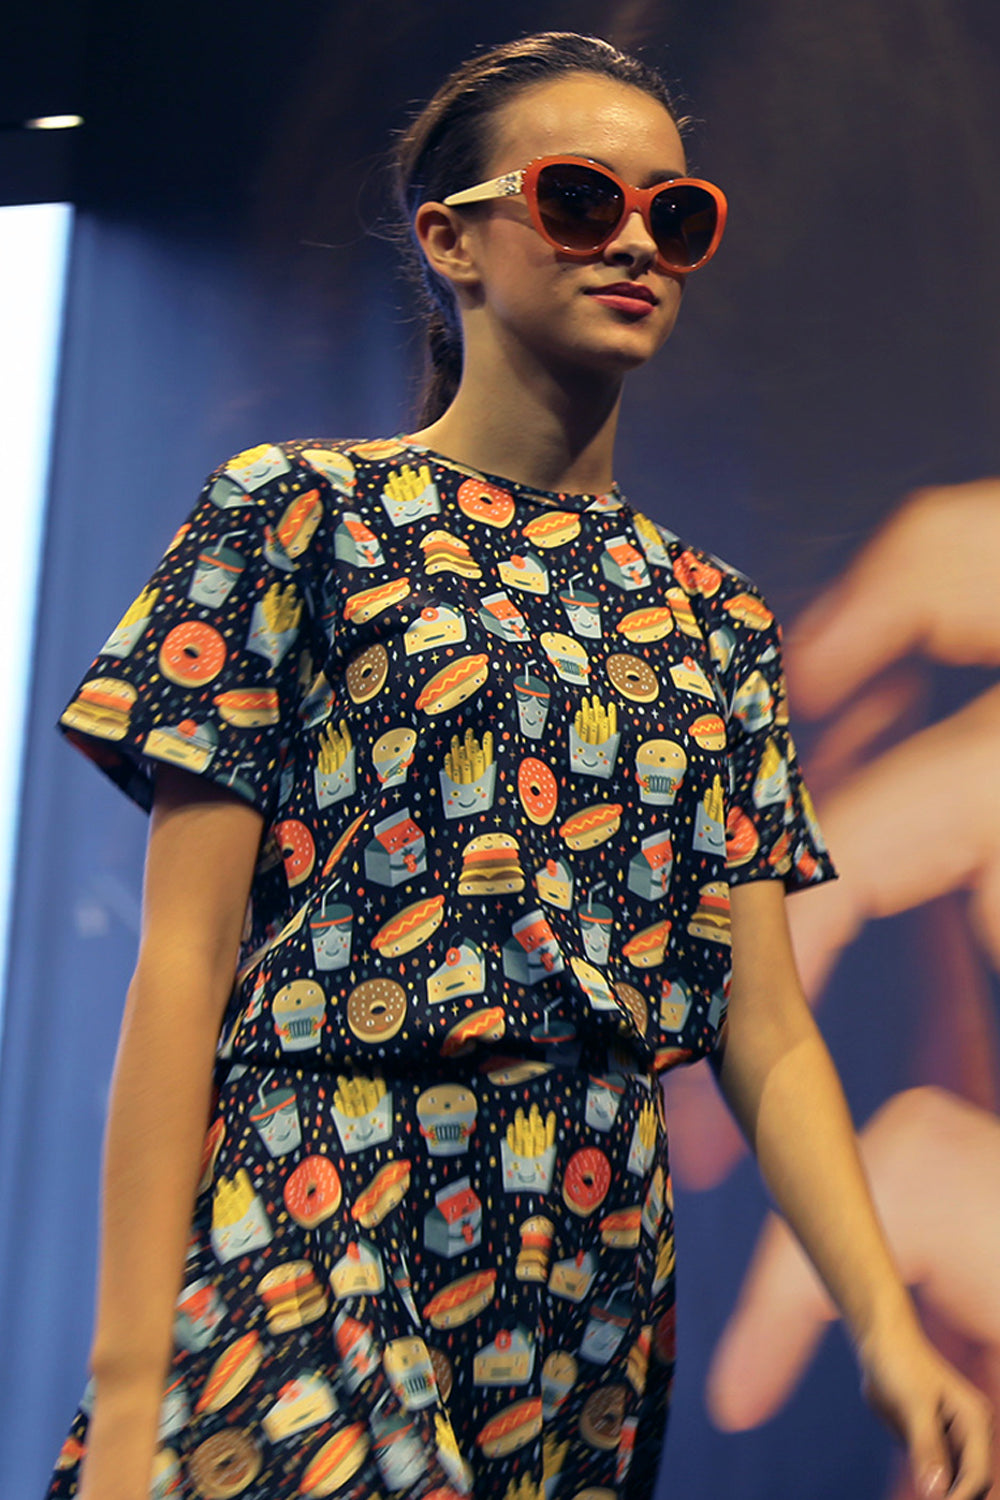 Happy Meal shirt